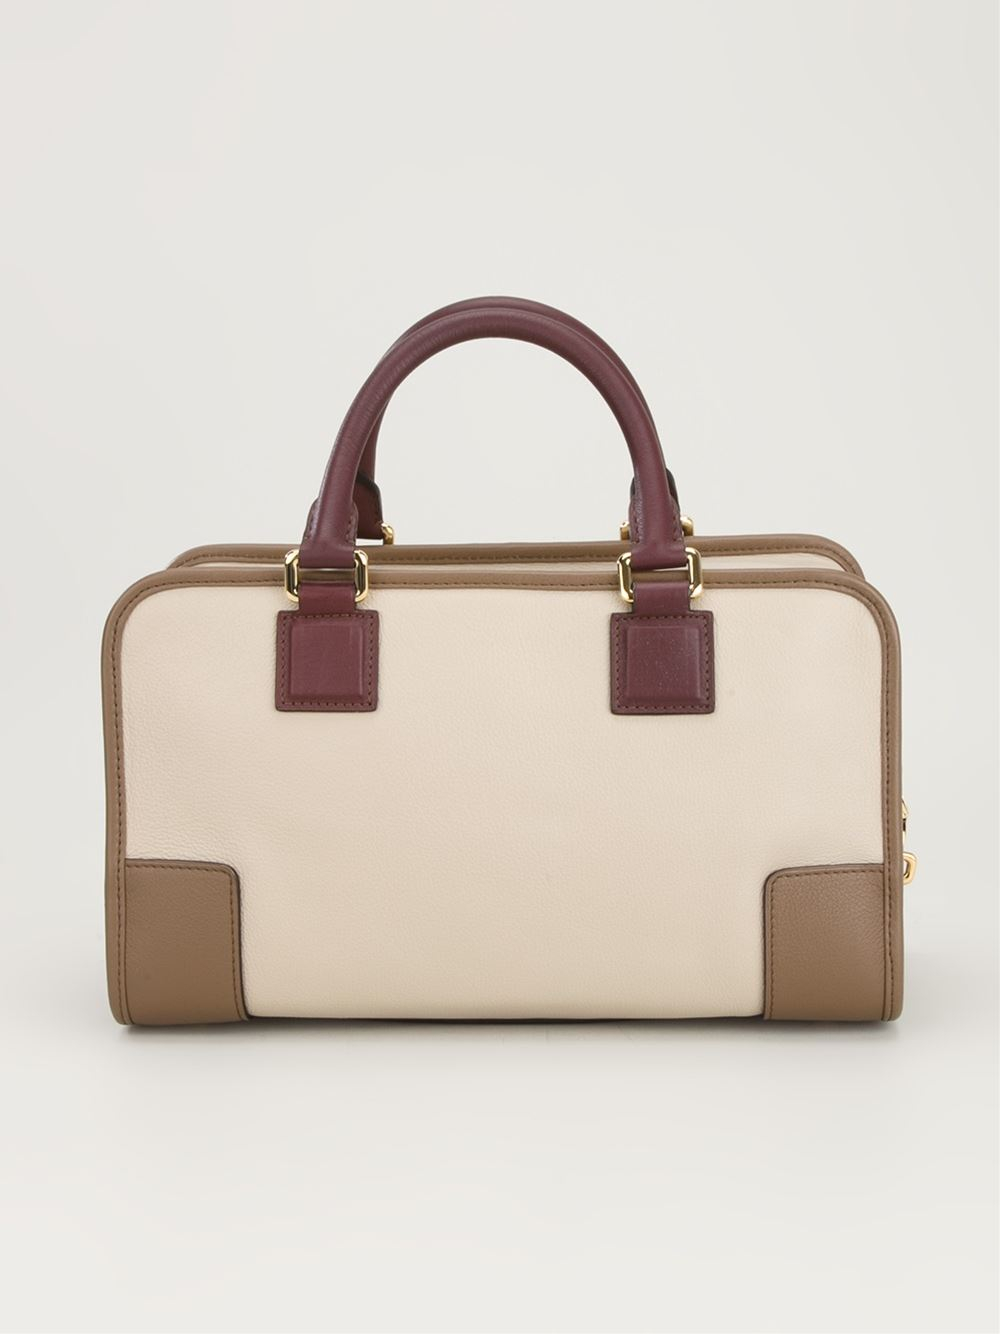 8848efedaef65 Loewe Structured Rectangle Tote Bag in Natural - Lyst